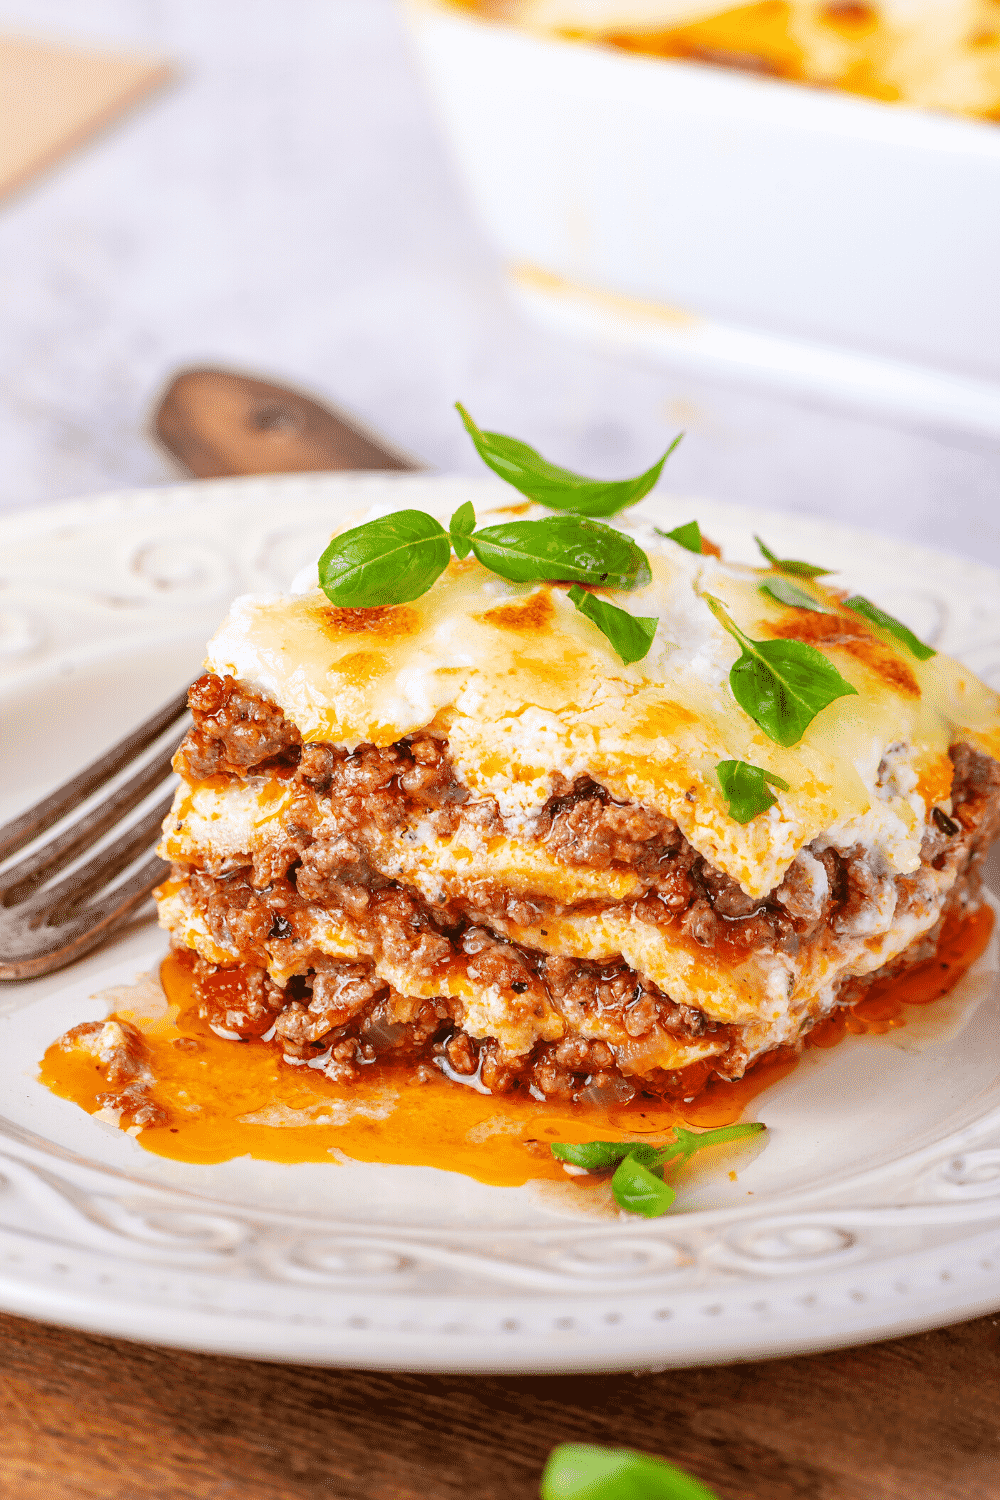 A piece of meat lasagna on a white plate. A fork is to the left of the piece of lasagna.